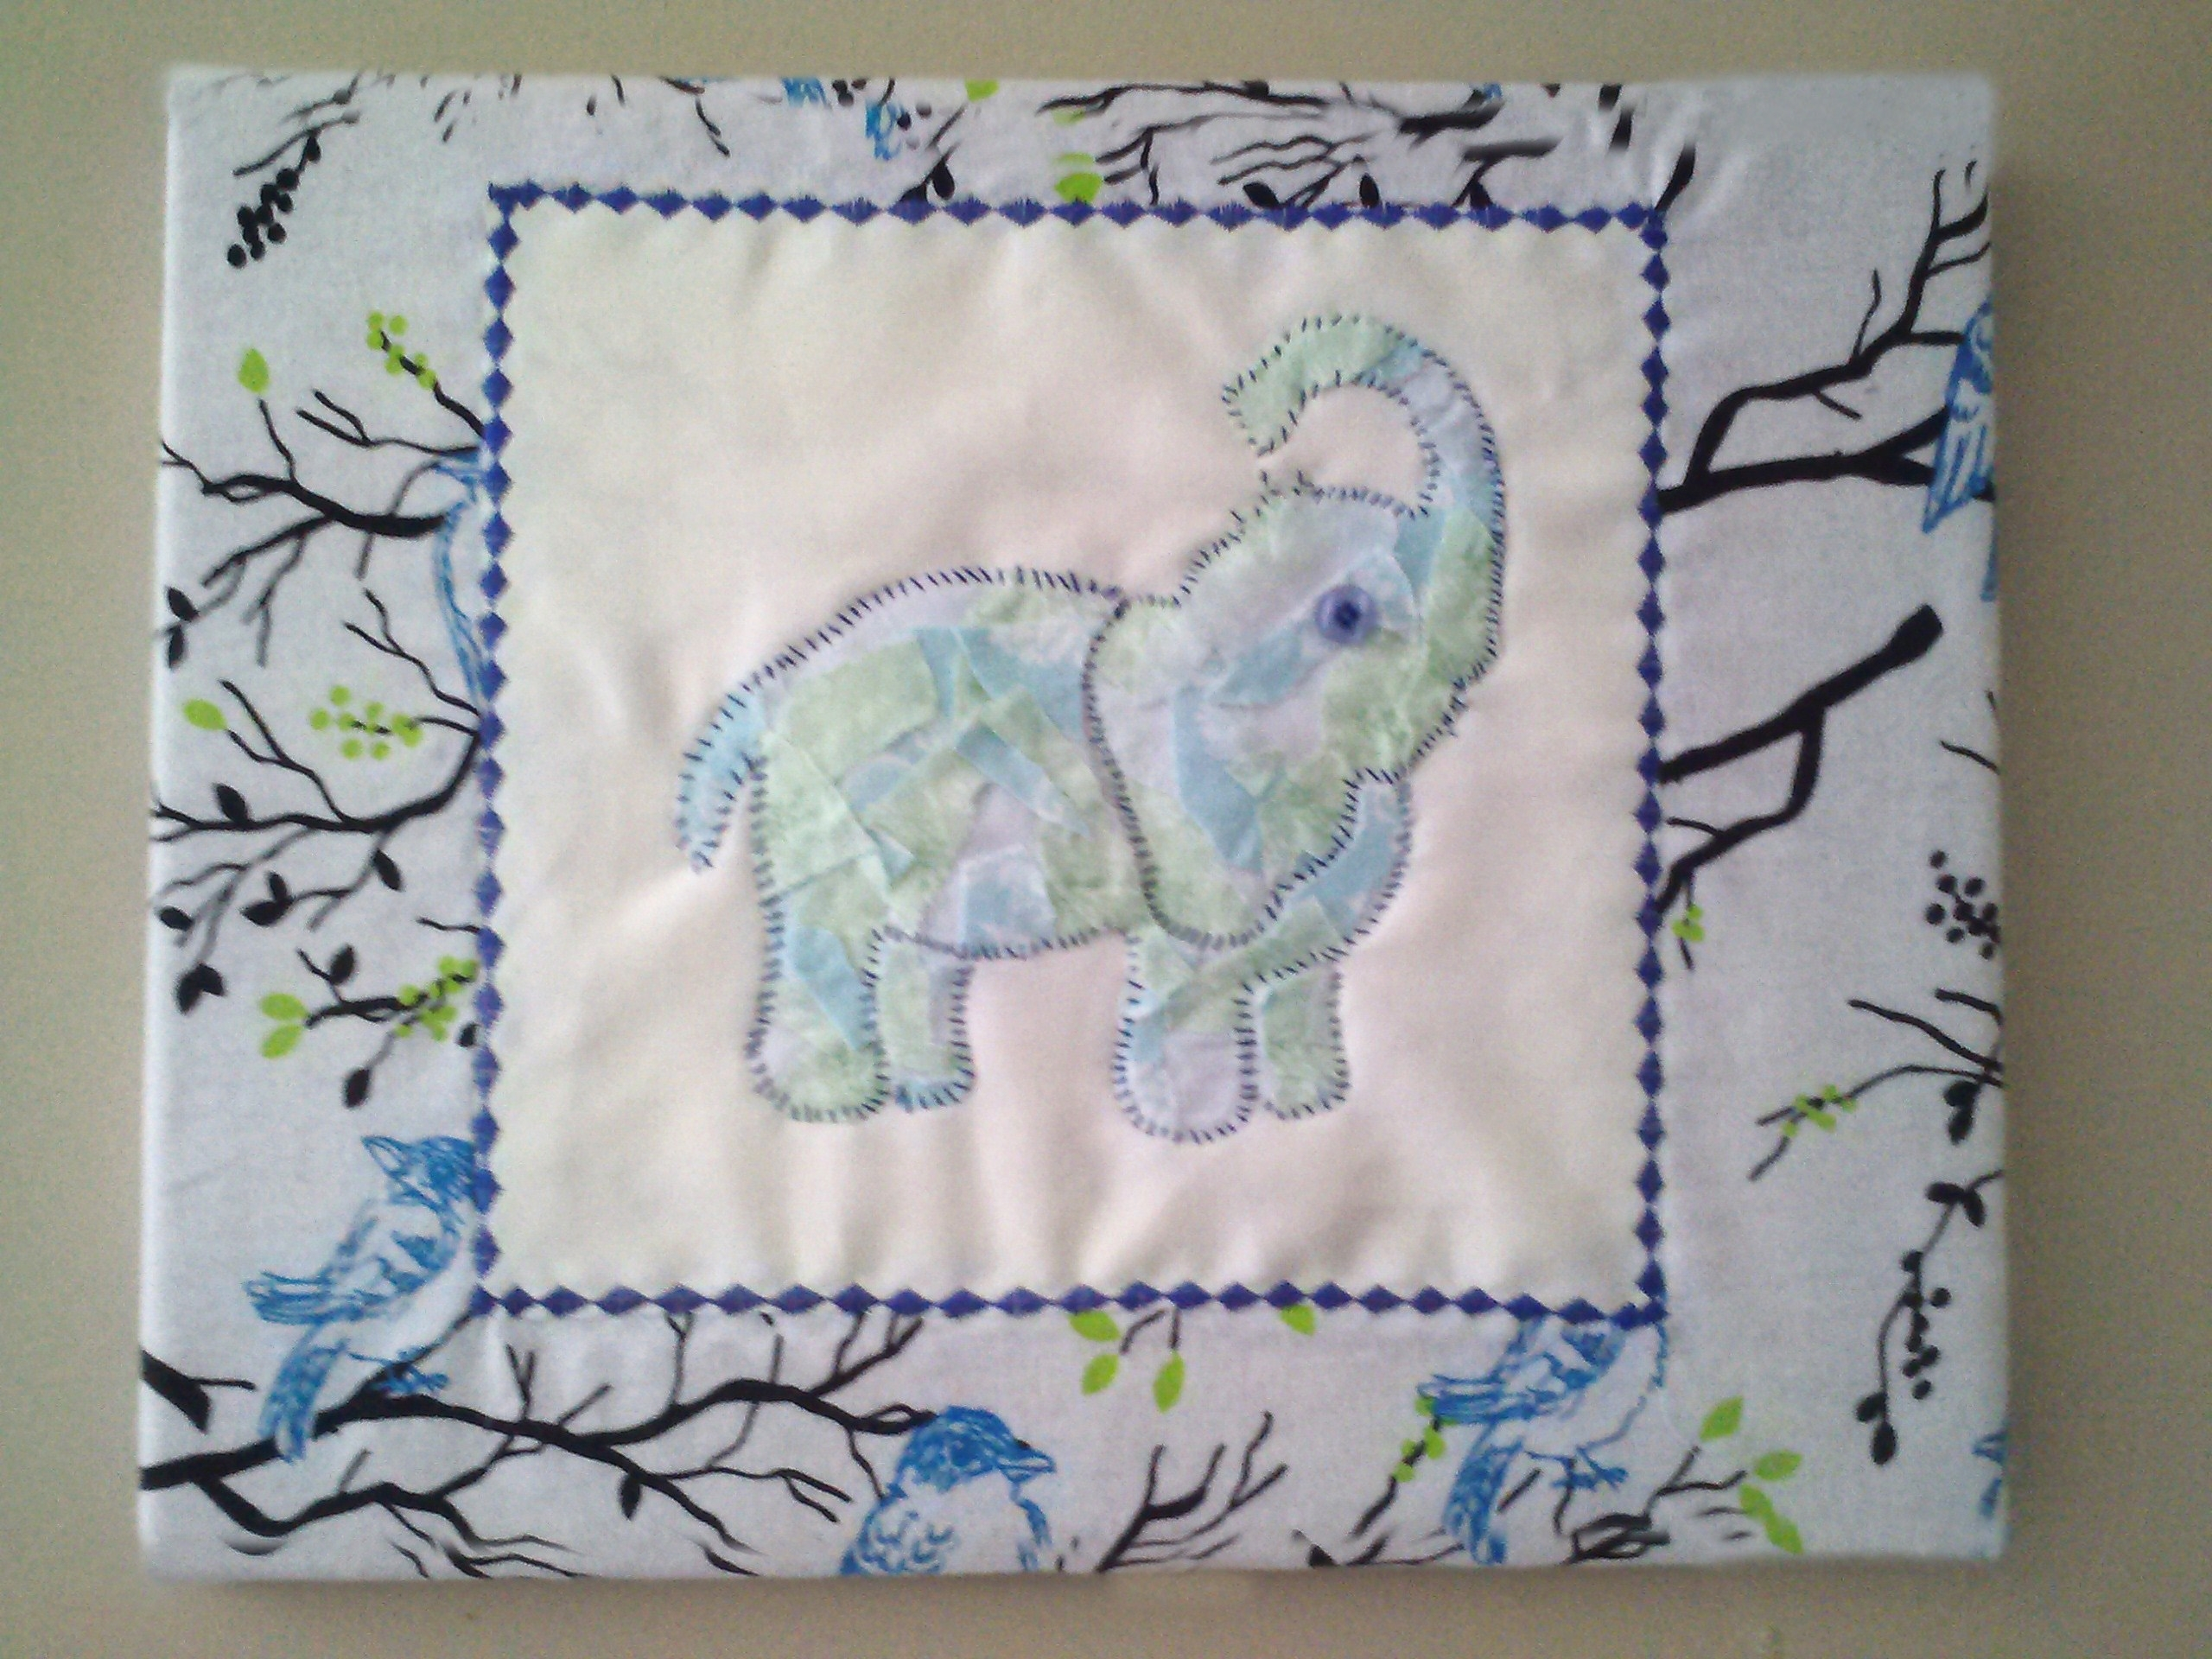 Diy Wall Art For Nursery: Fabric Covered Canvas | Christian Mom Values Intended For 2017 Nursery Fabric Wall Art (View 9 of 15)